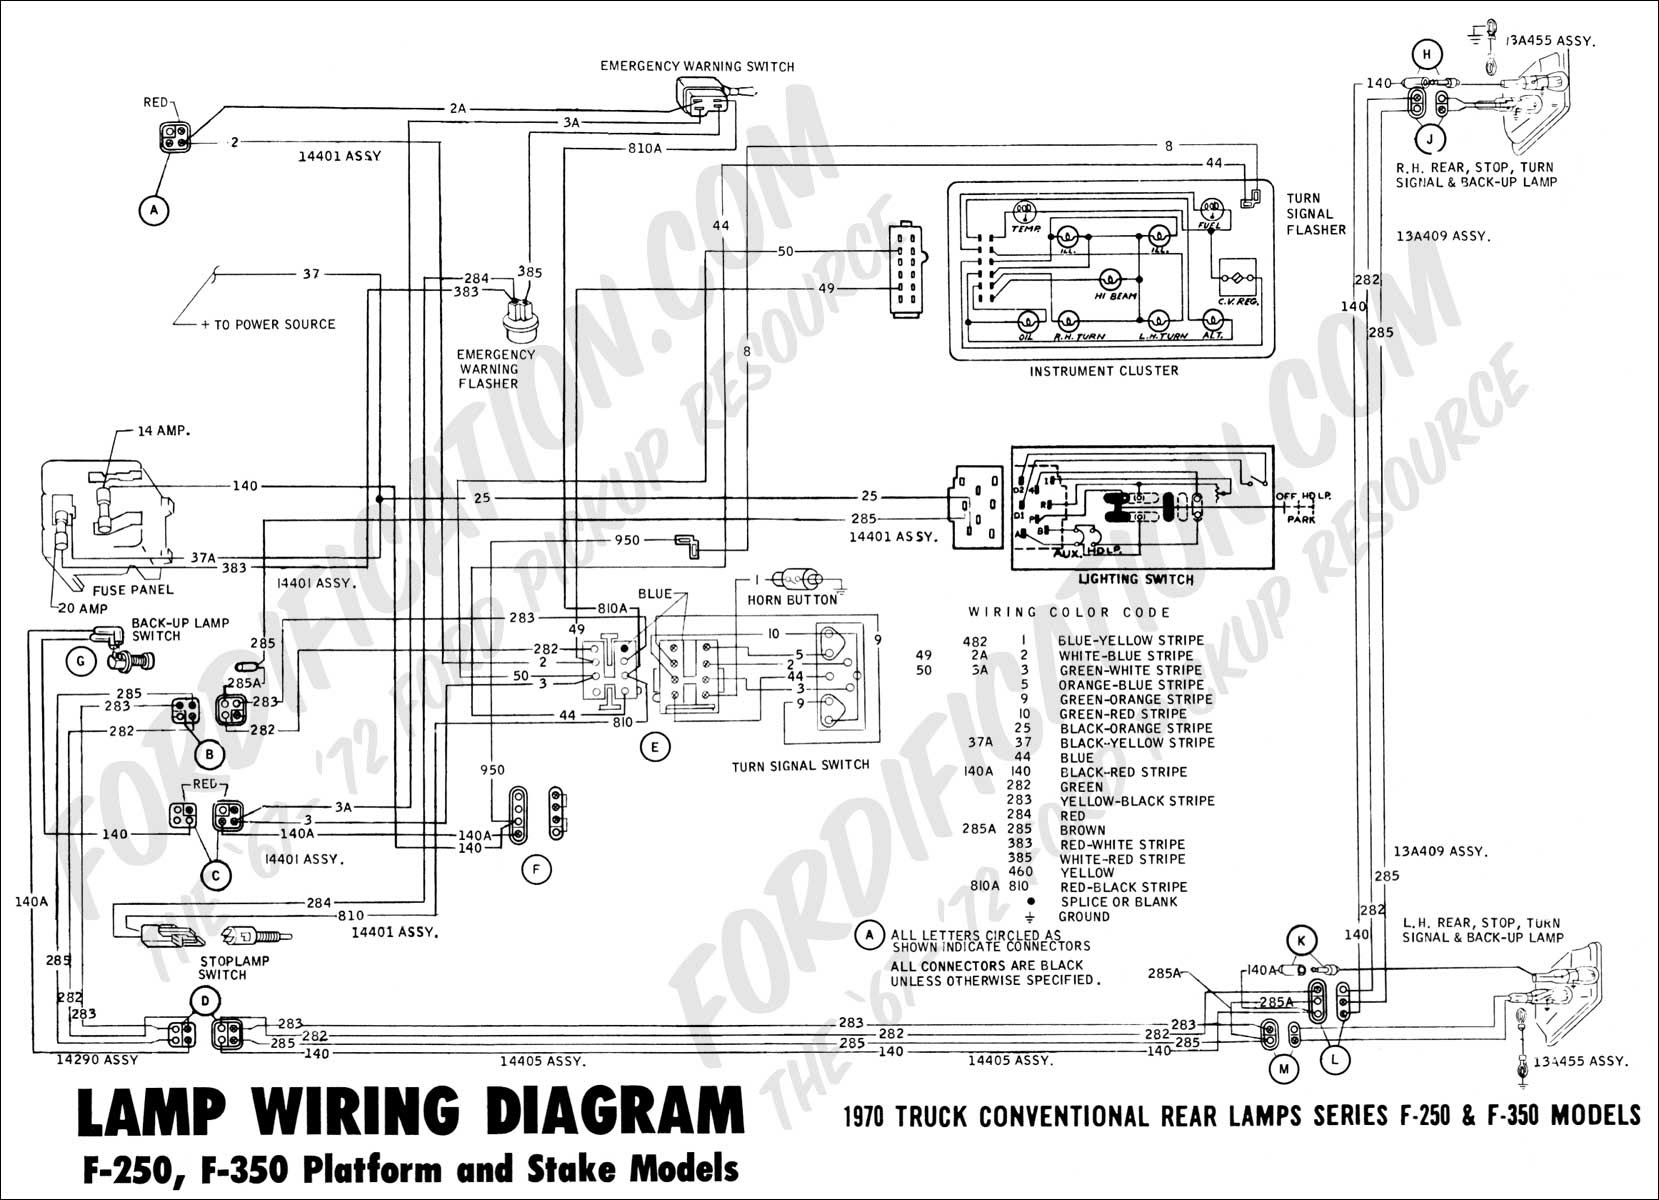 60c2 2001 Dodge Ram 1500 Alternator Wiring Harness Wiring Library